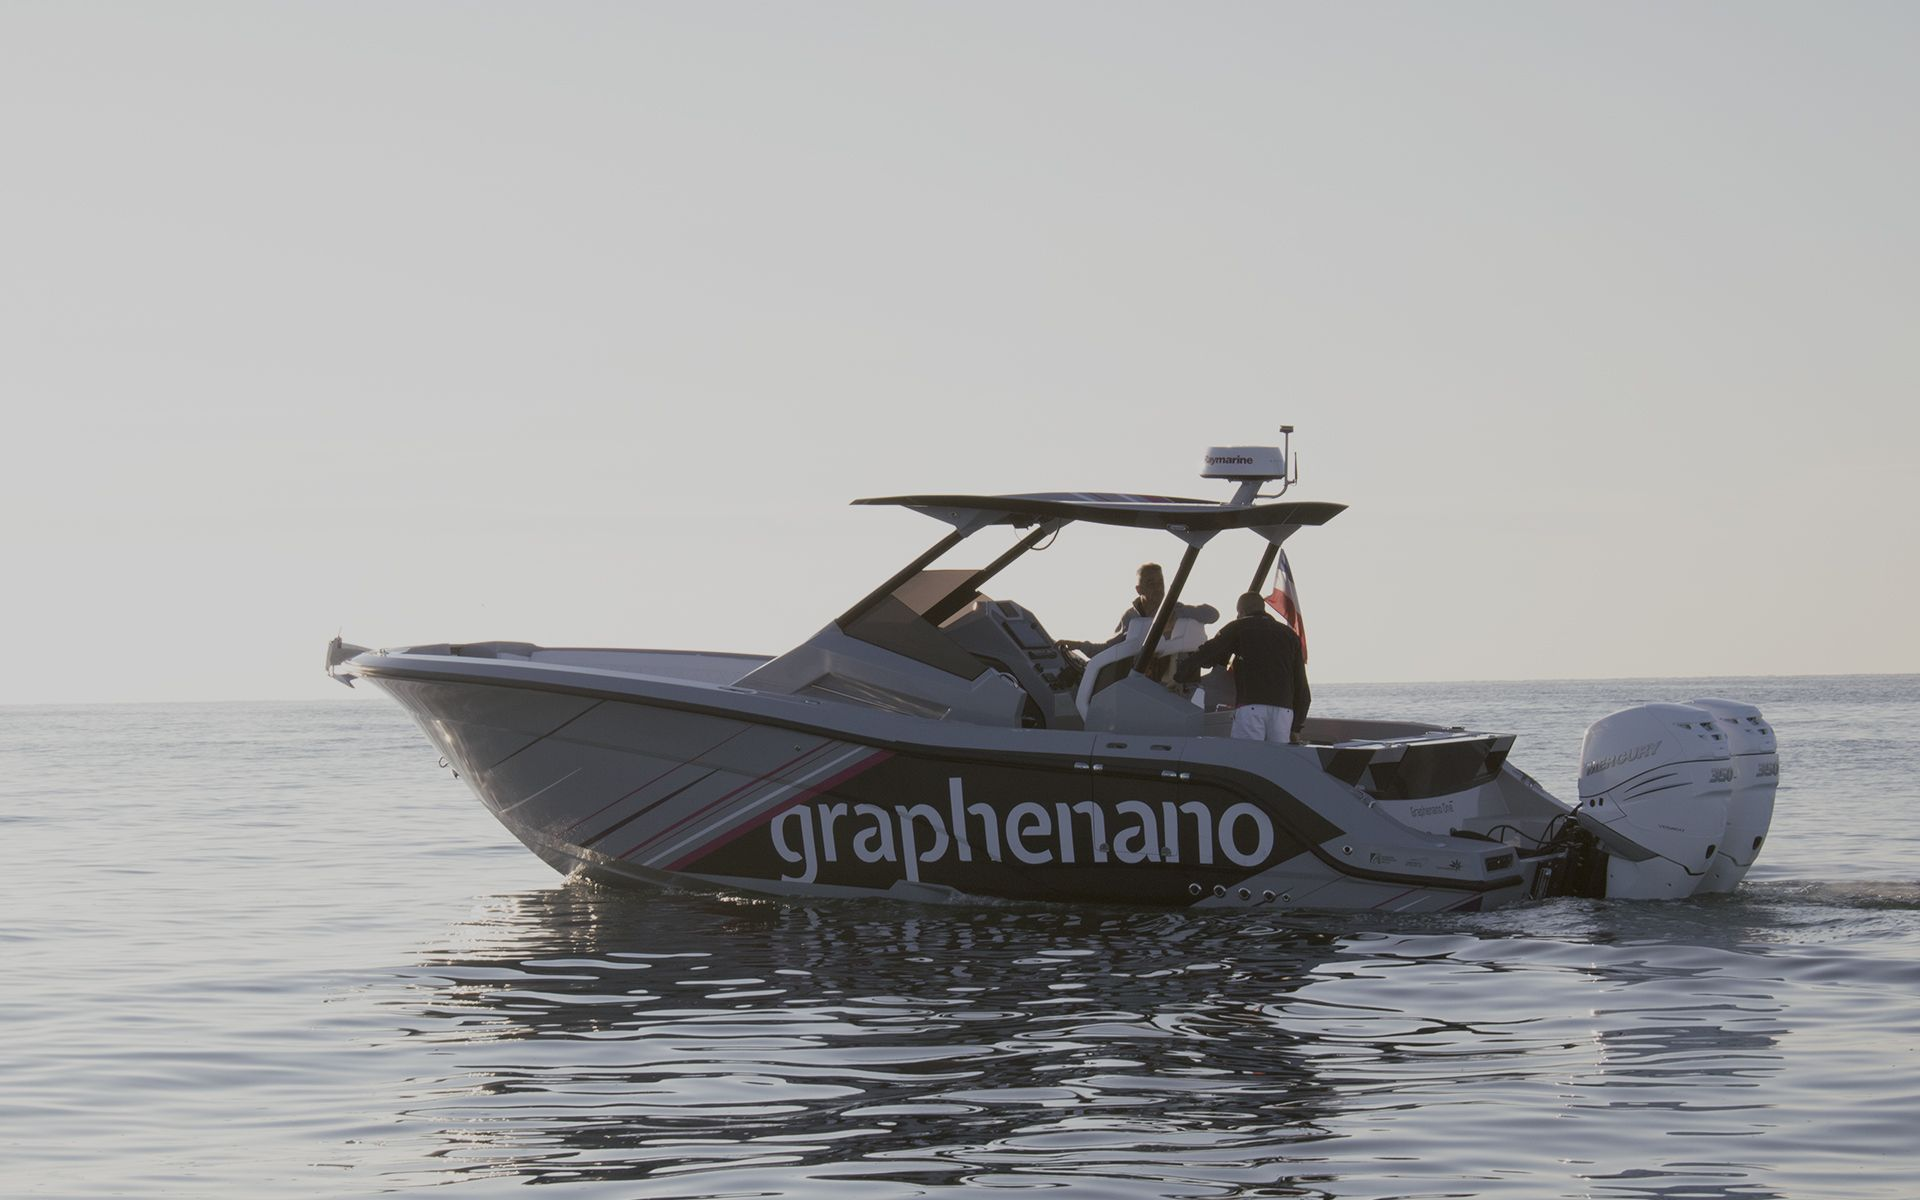 FIRST BOAT IN THE WORLD WITH GRAPHENE